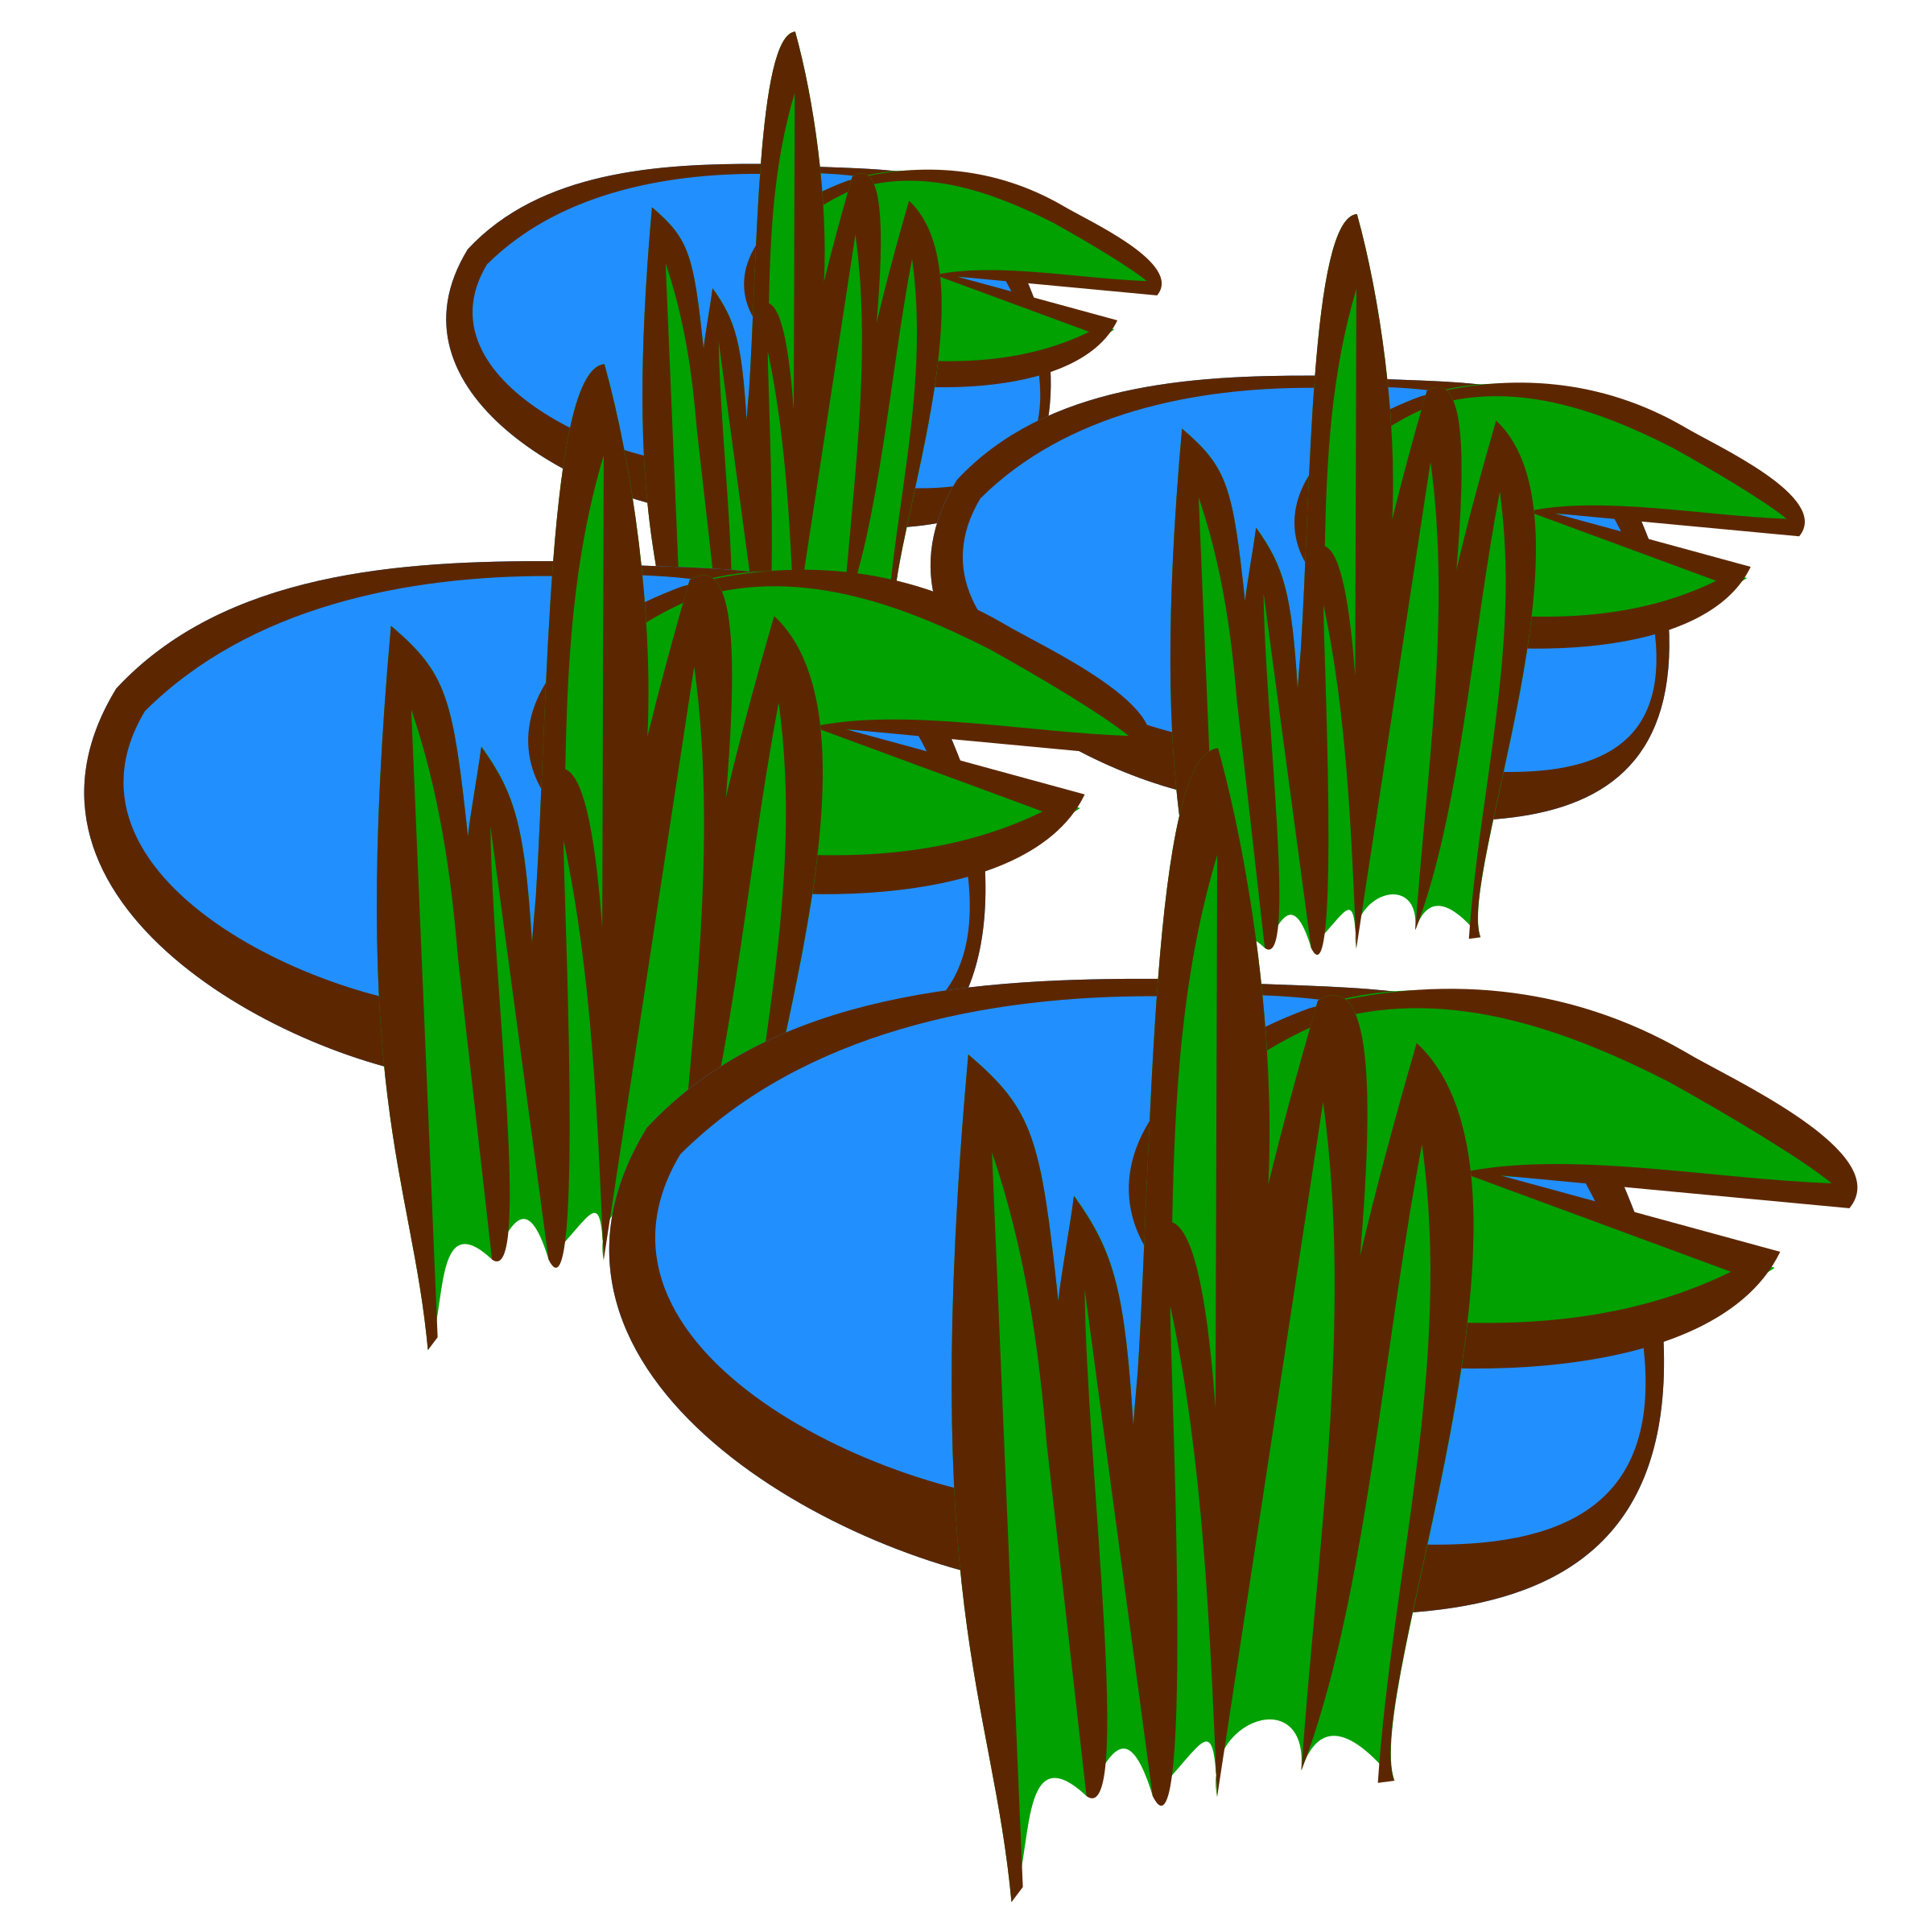 Clipart swamp banner library download Free Swamp Cliparts, Download Free Clip Art, Free Clip Art on ... banner library download